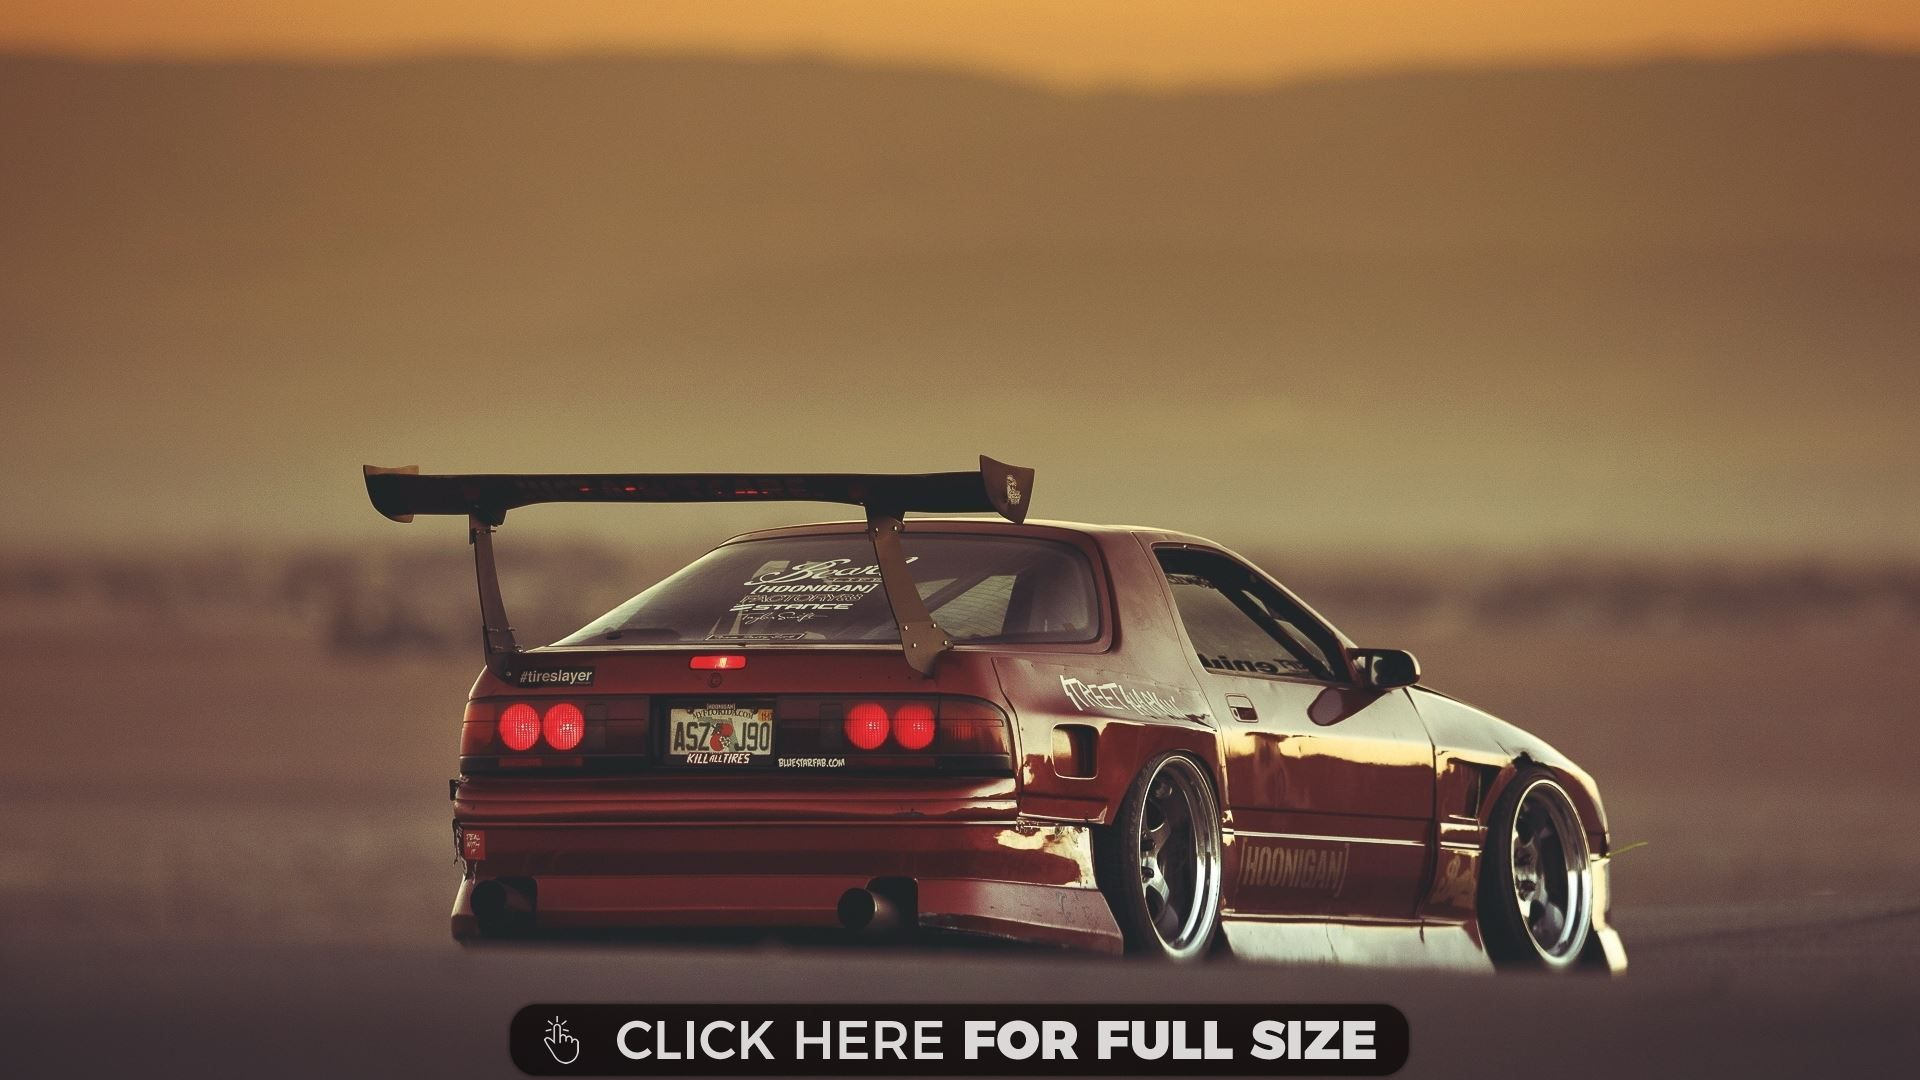 Rear Modified Car Wallpaper Jdm Wallpaper Modified Cars Jdm